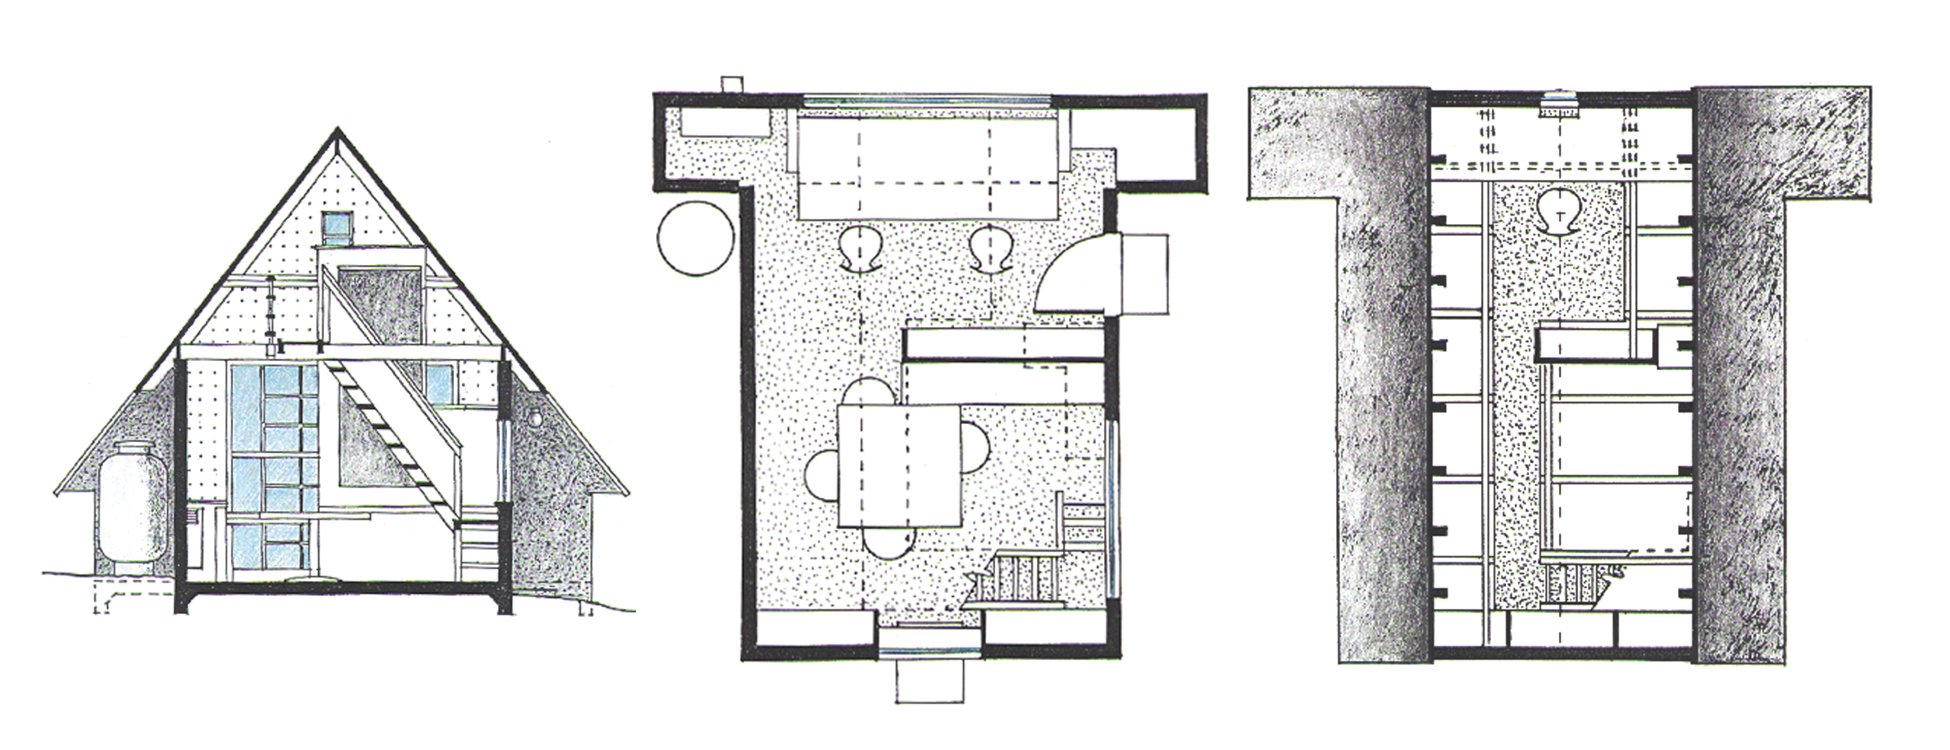 Croton Studio Plans & Section